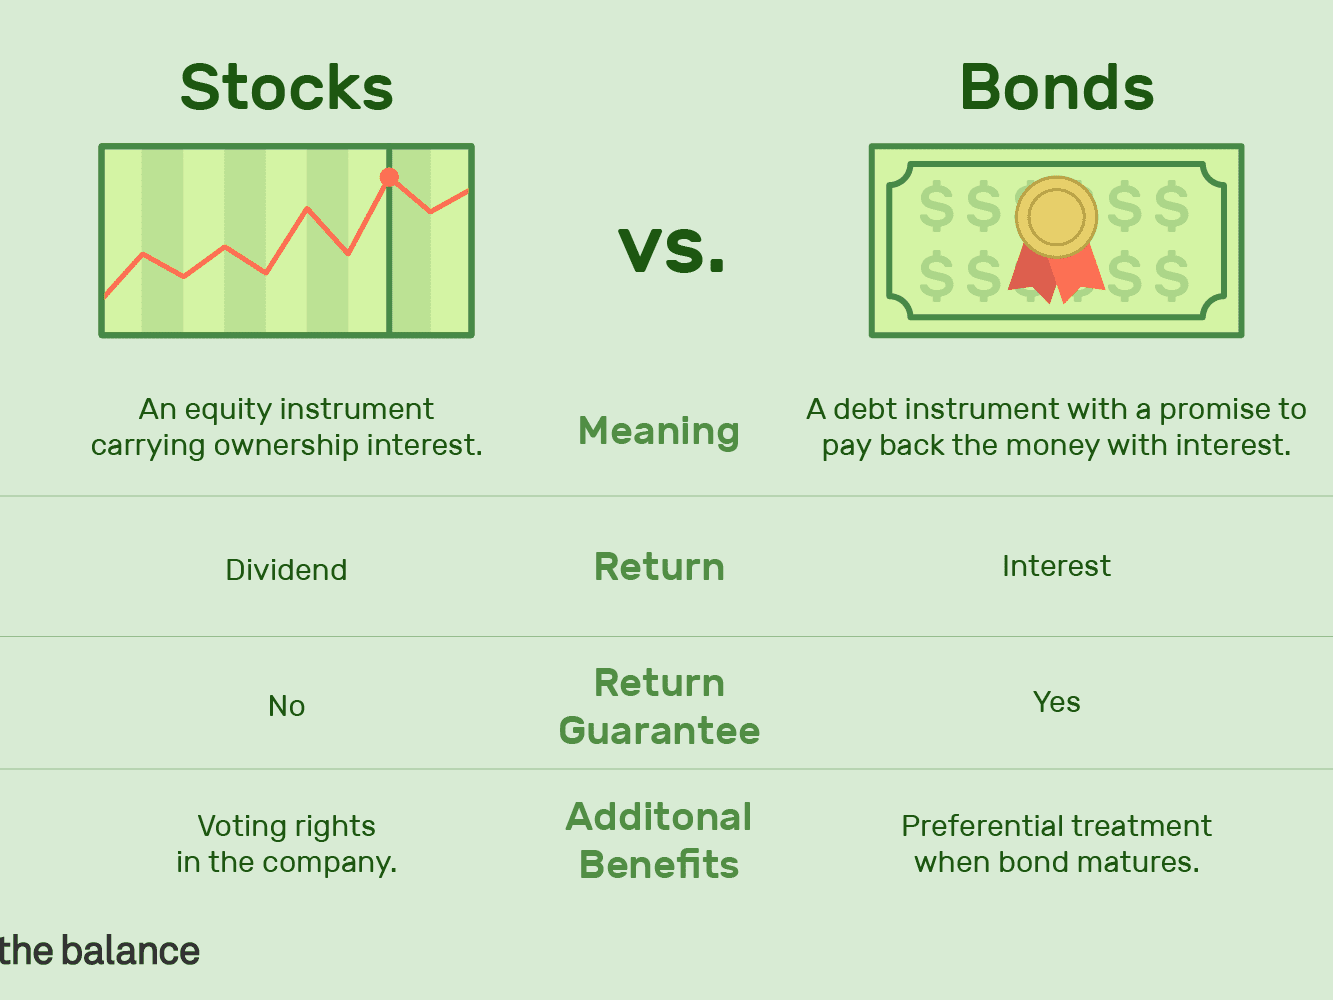 Stocks investment definition starlight investments glassdoor reviews